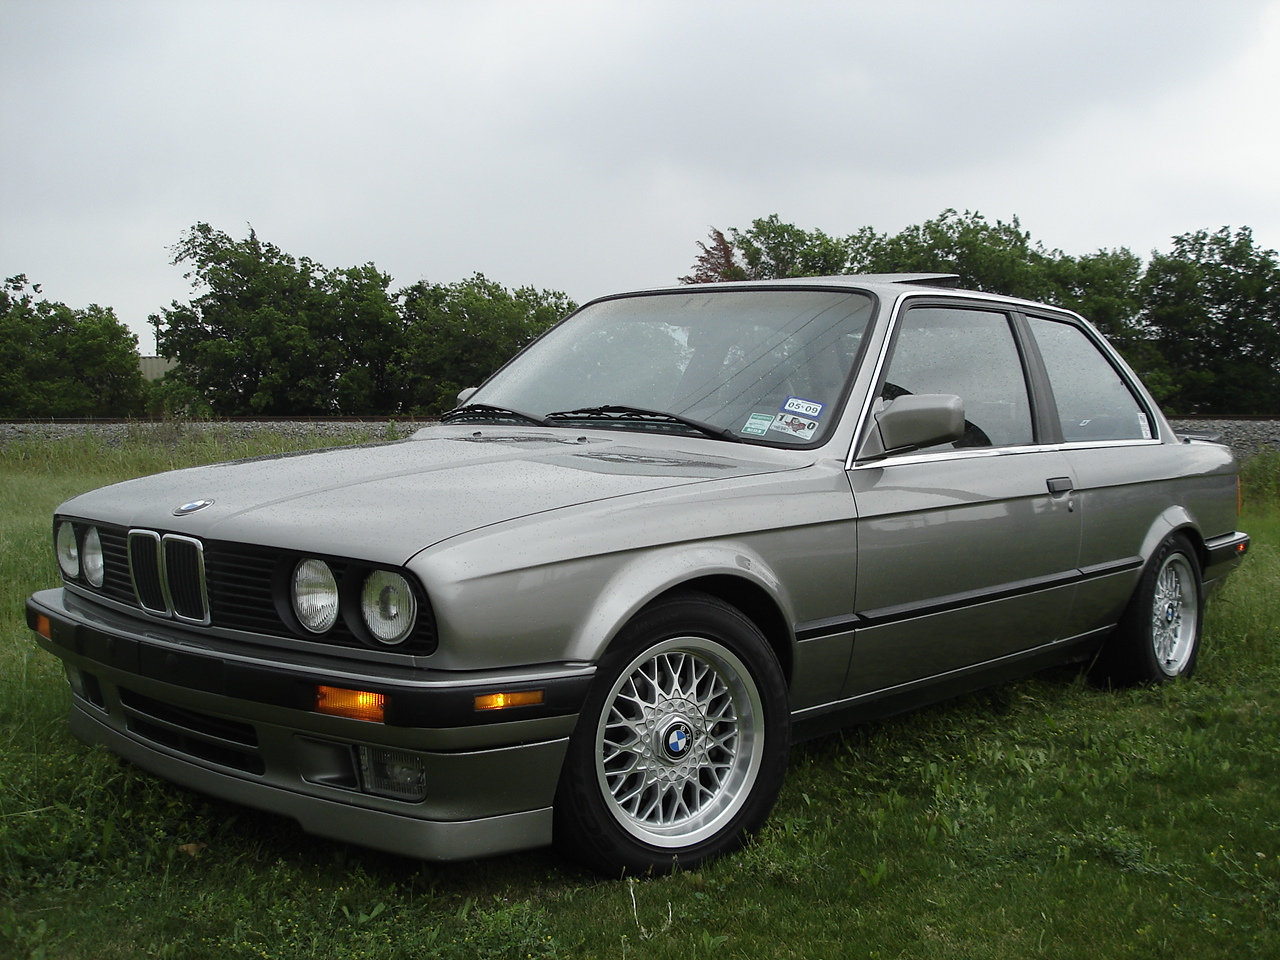 BMW 3 series 316i 1988 photo - 4